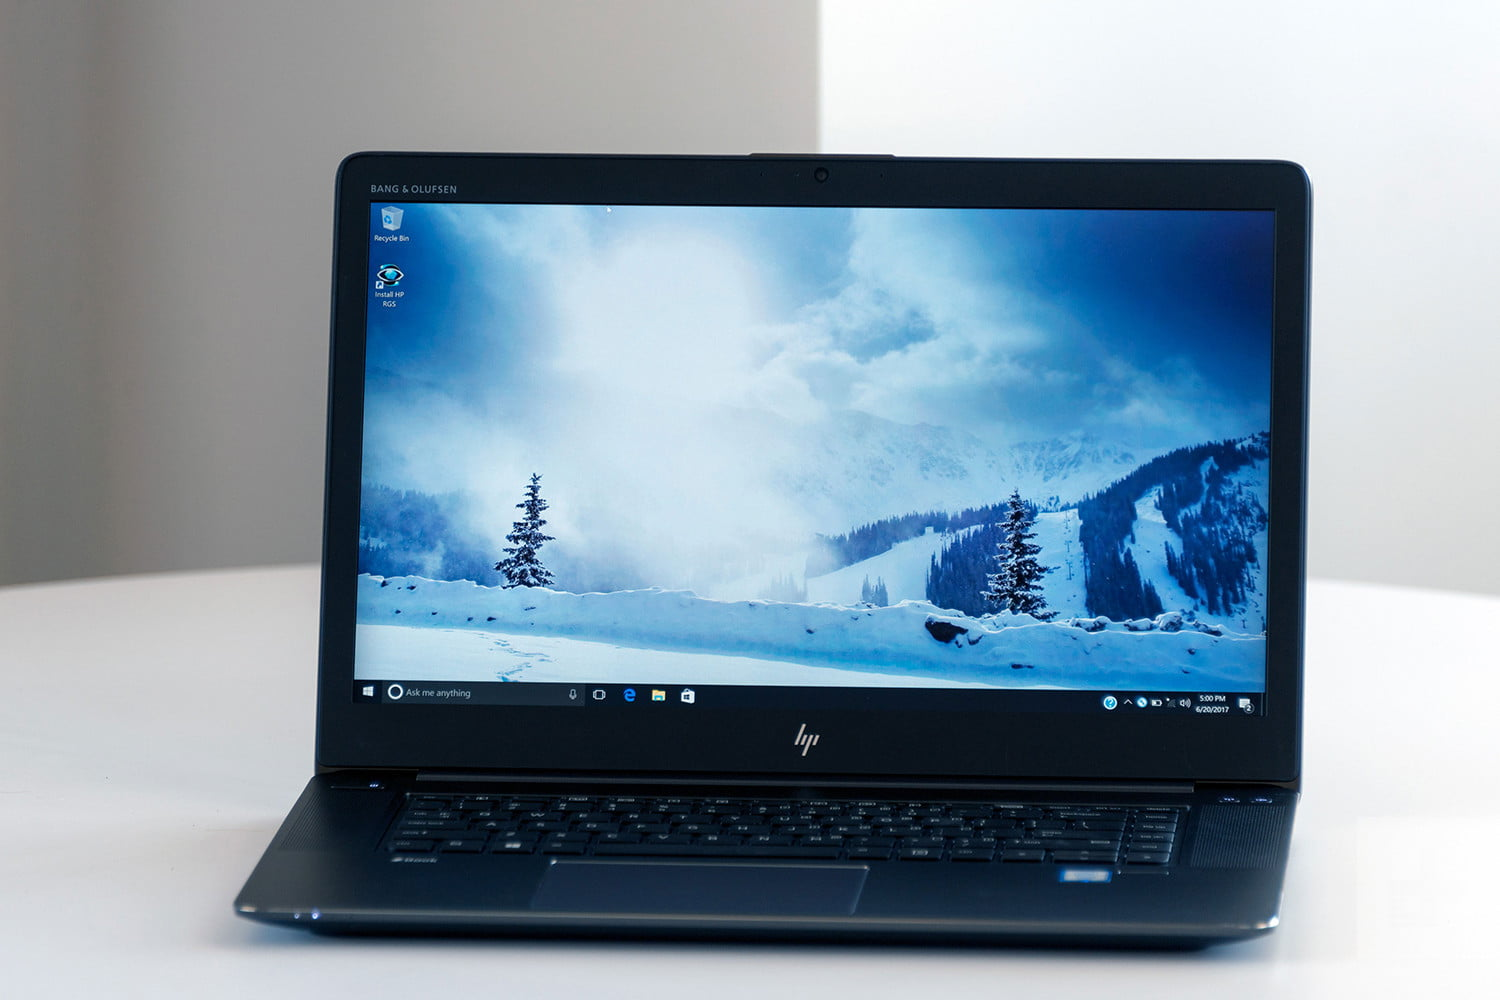 Is 1440p Resolution Missing On Your Laptop? Here's Why